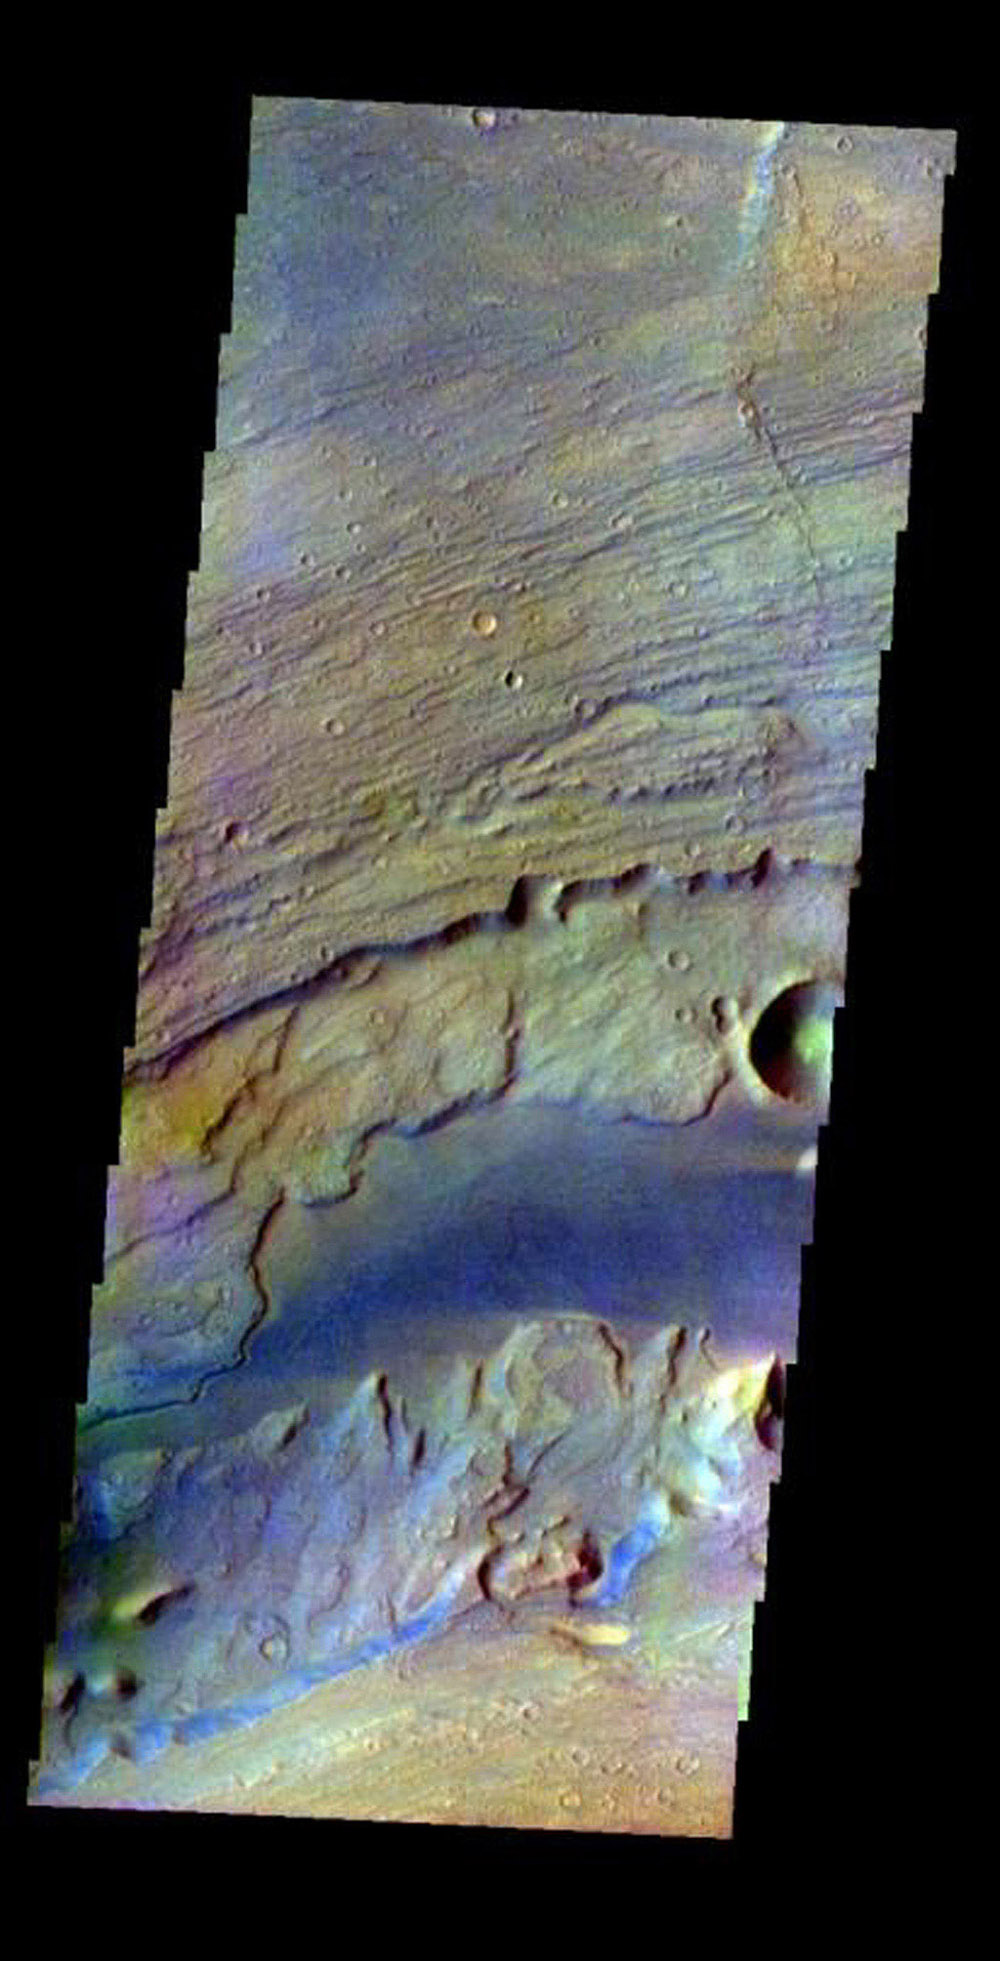 This image was collected July 17, 2002 during northern spring season on Mars. The image shows an area in the Kasei Valles region as seen by NASA's 2001 Mars Odyssey.